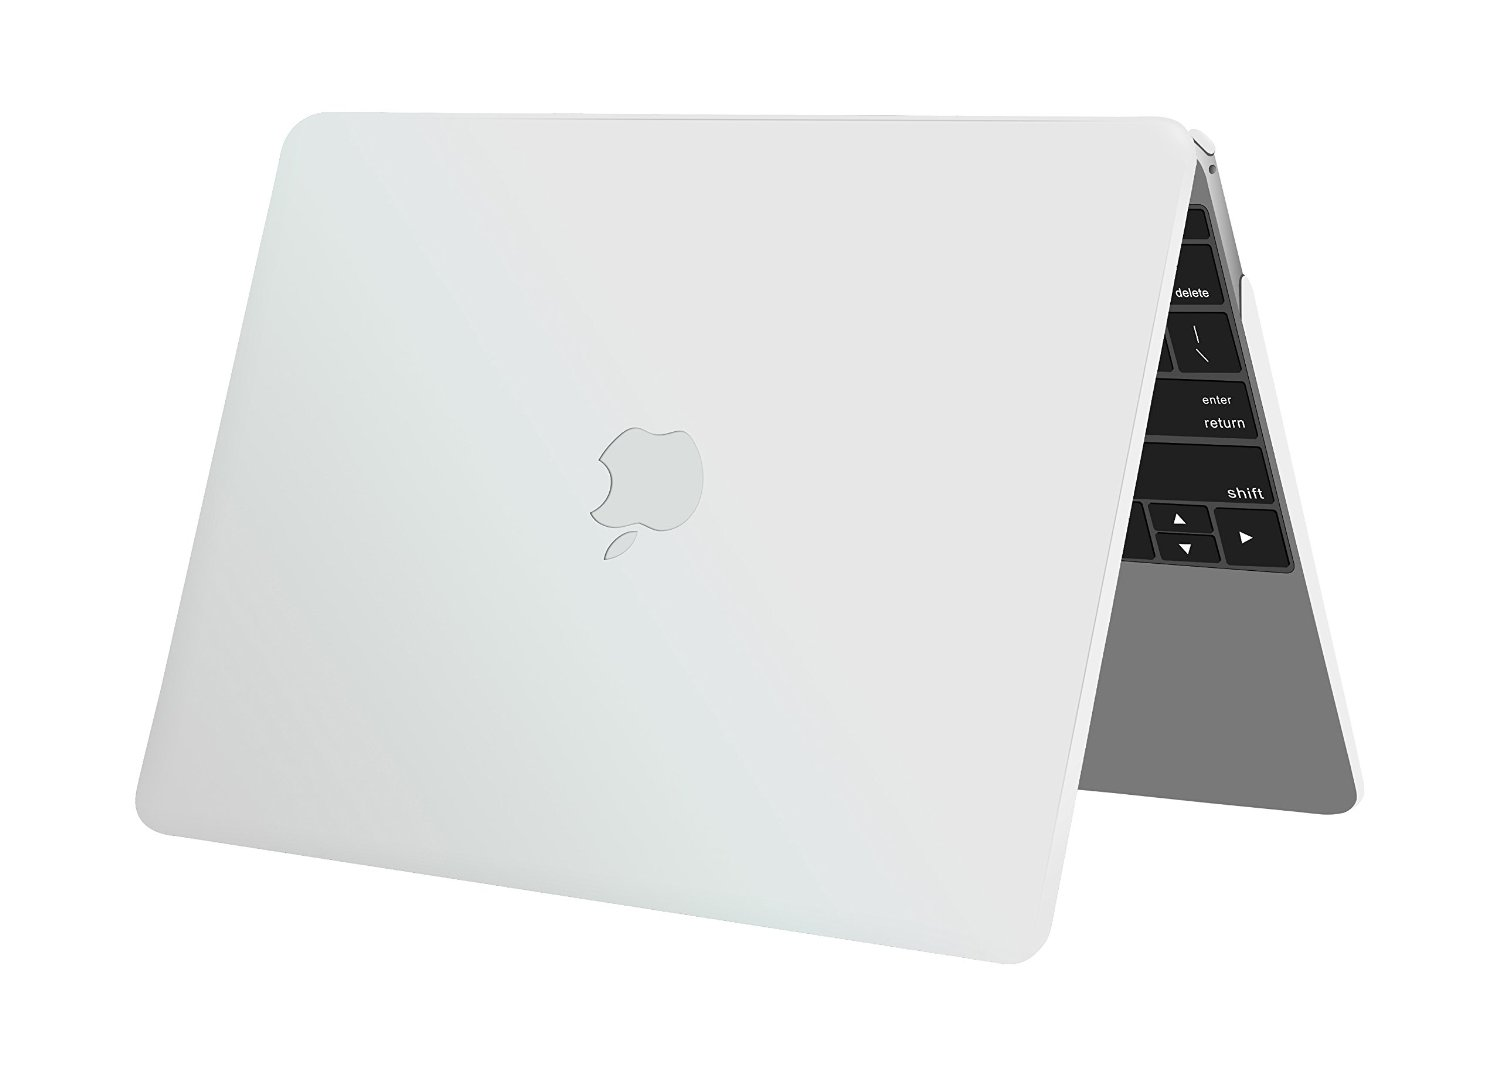 MacBook Pro Review: Votech White Case | GiveMeApps